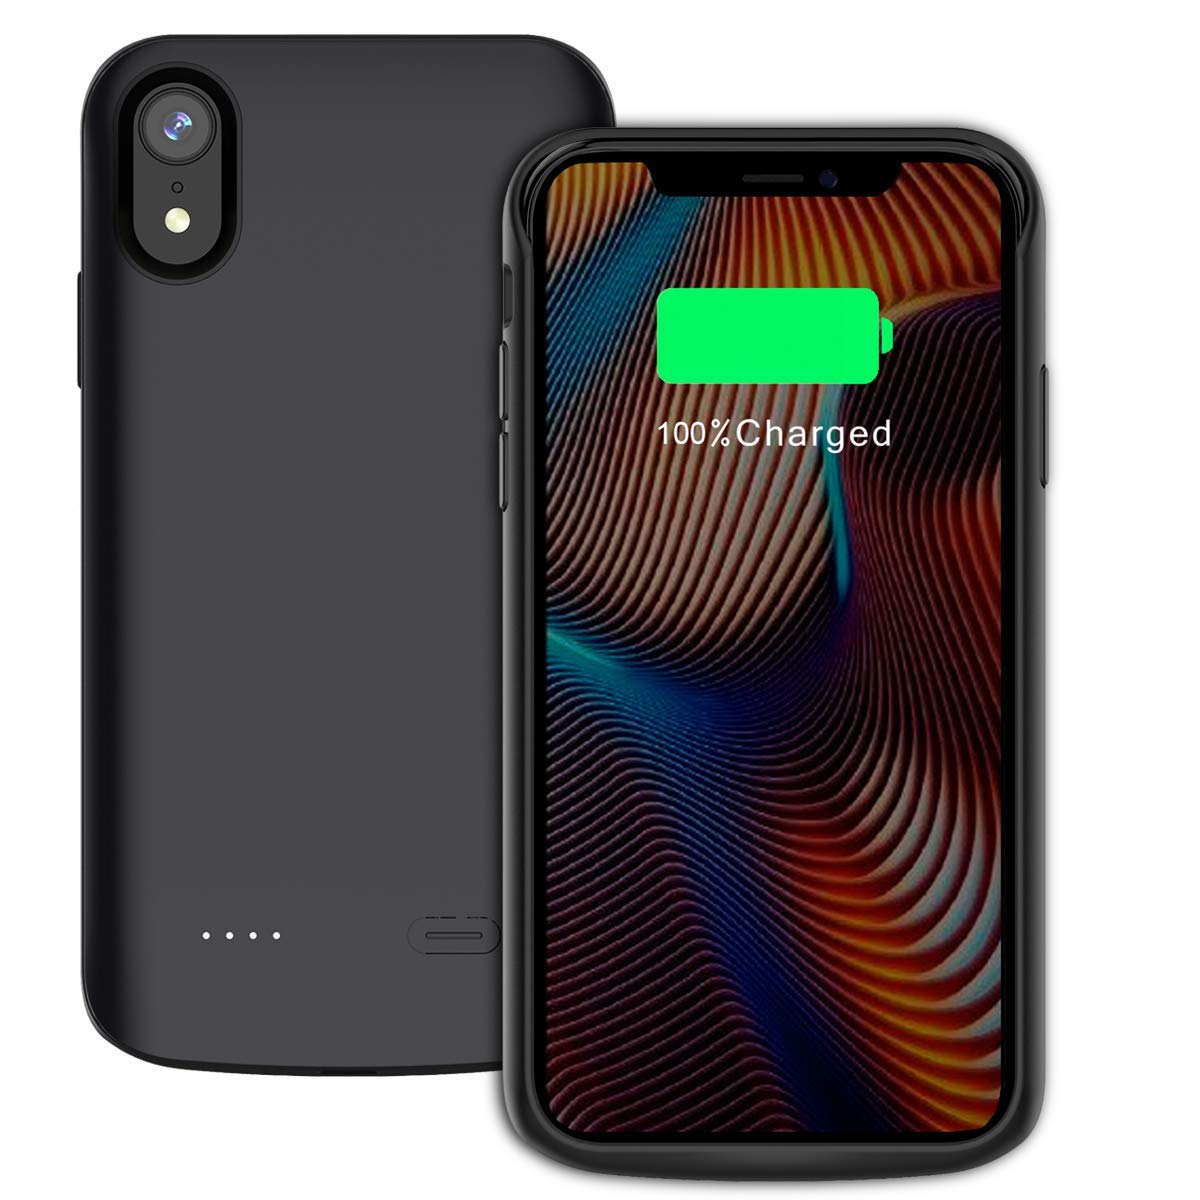 Compatible iPhone Xr Battery Case, 6000mAh Rechargeble Portable External Power Bank Battery Pack Charger Case Ultra Slim Extended Backup Charging Protective Case for iPhone Xr (2018) 6.1 inch Black 1